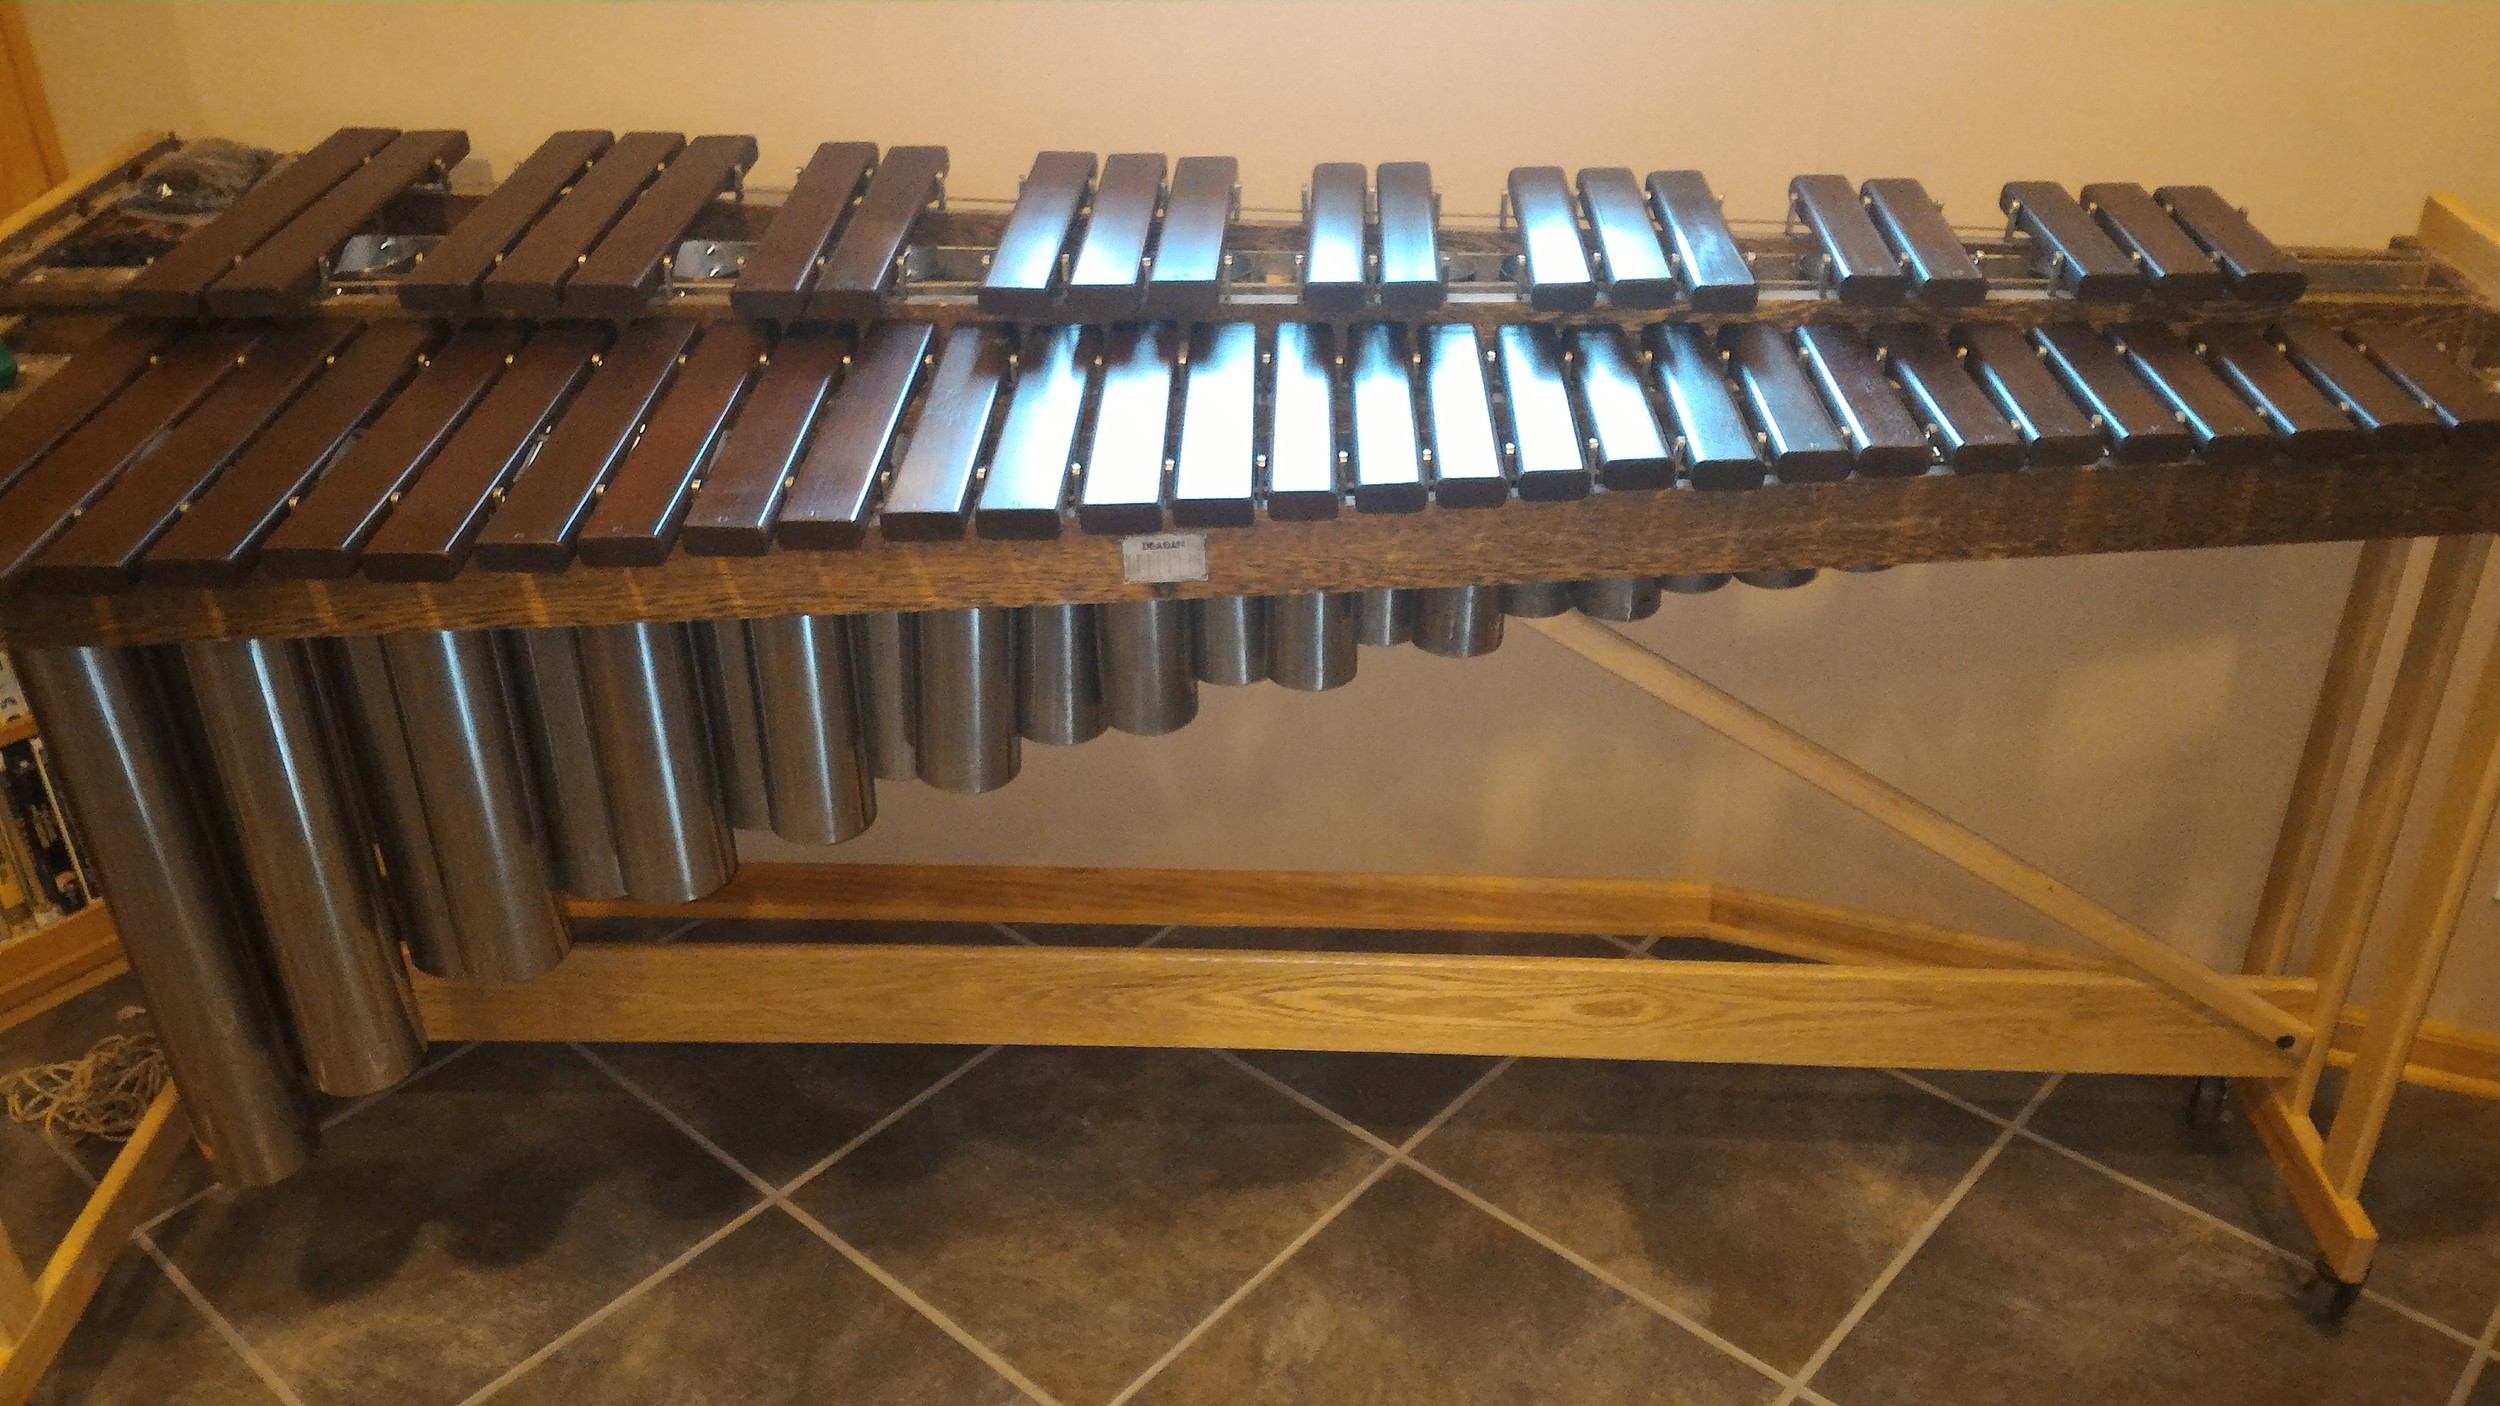 Deagan Marimba - After Restoration